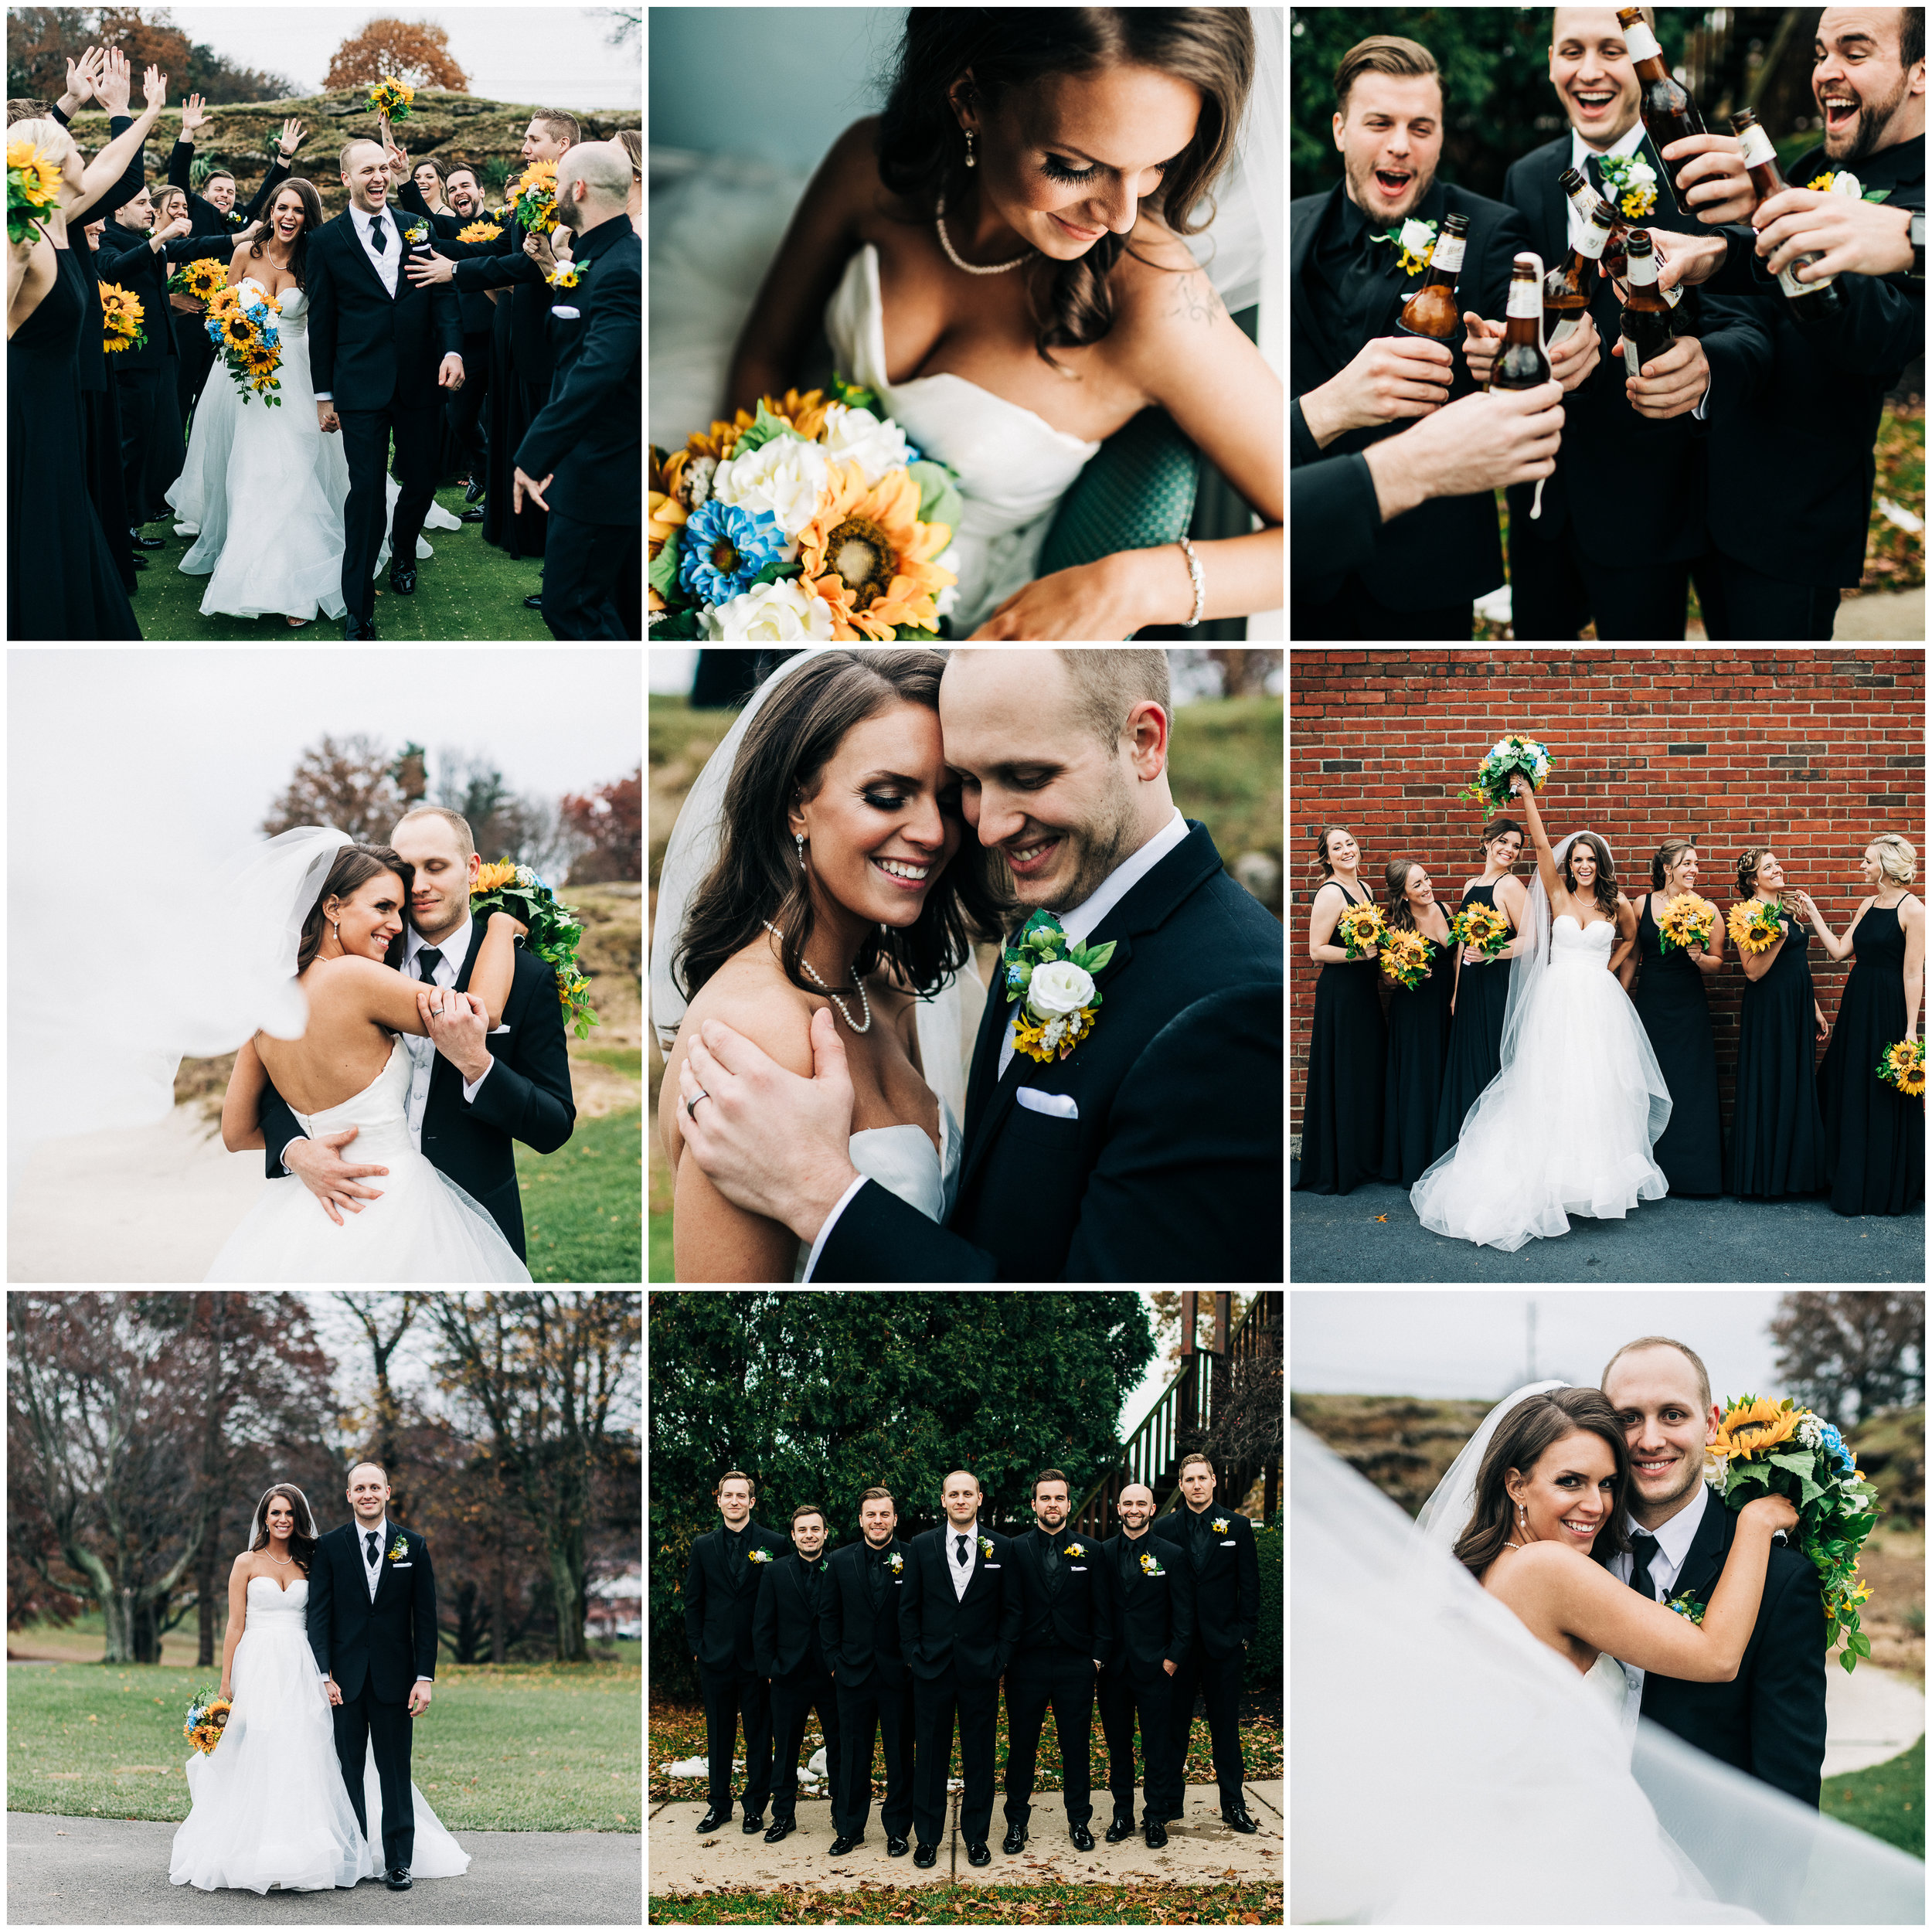 Tiffany + Andrew Wedding 1x1.jpg